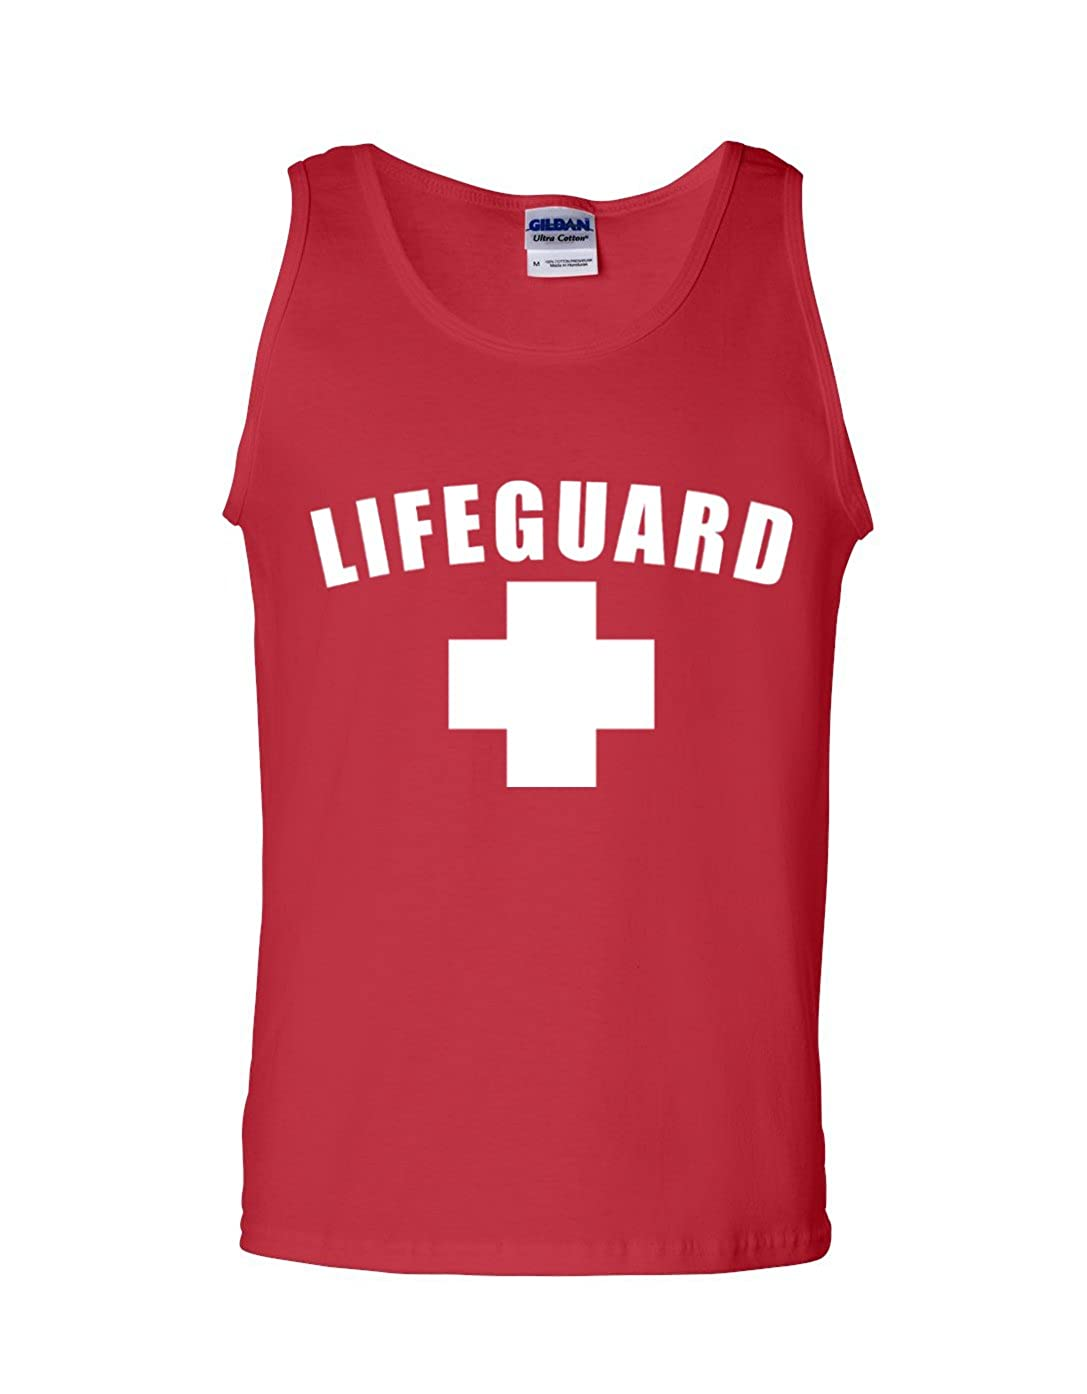 Lifeguard Tank Top Lifeguard Tanks White or Red